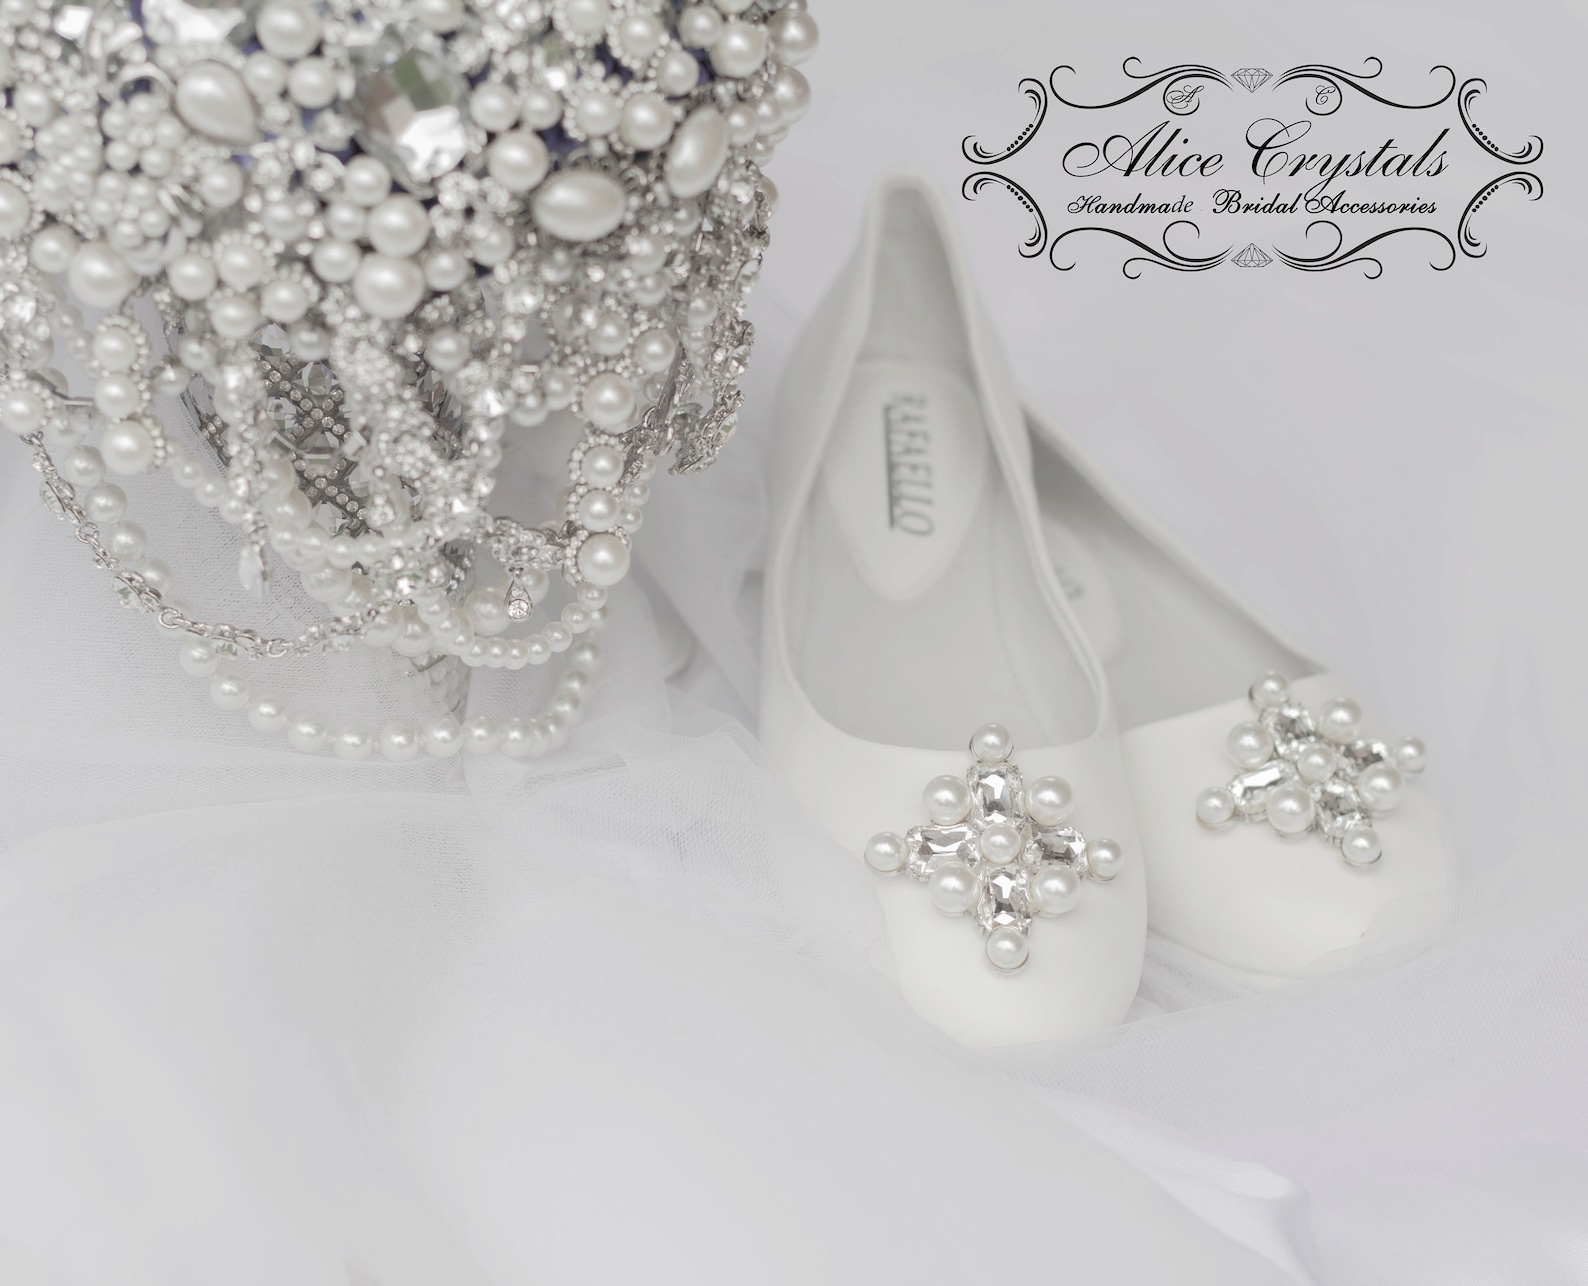 white wedding crystal ballet flats. white pearls bridal shoes. classic bridal shoes.